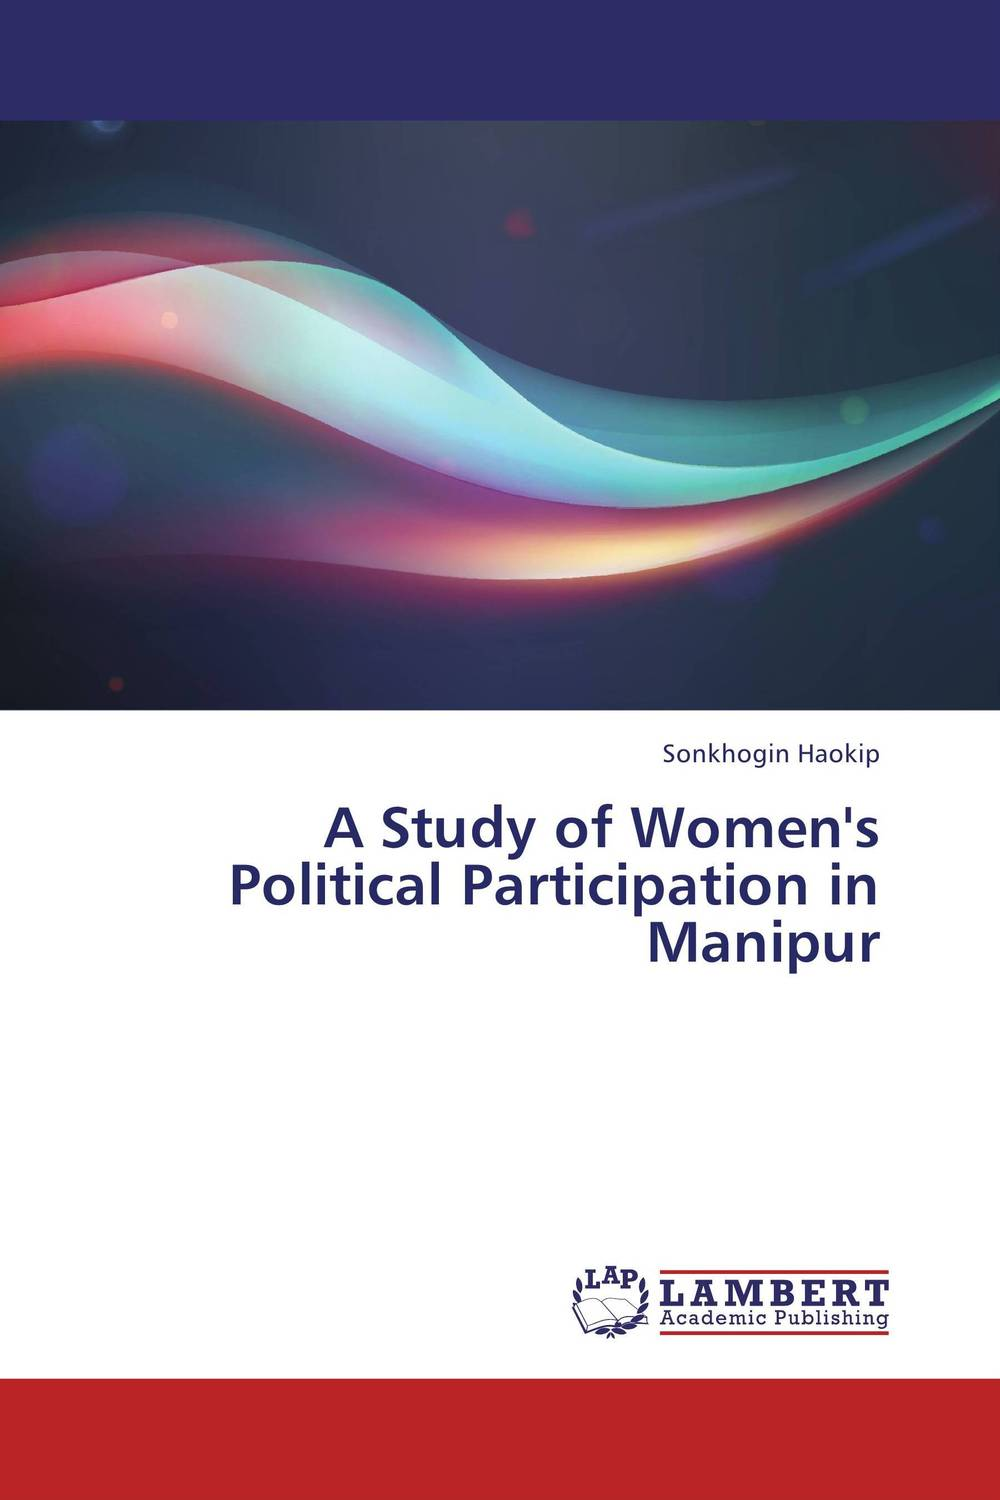 A Study of Women's Political Participation in Manipur браслеты page 5